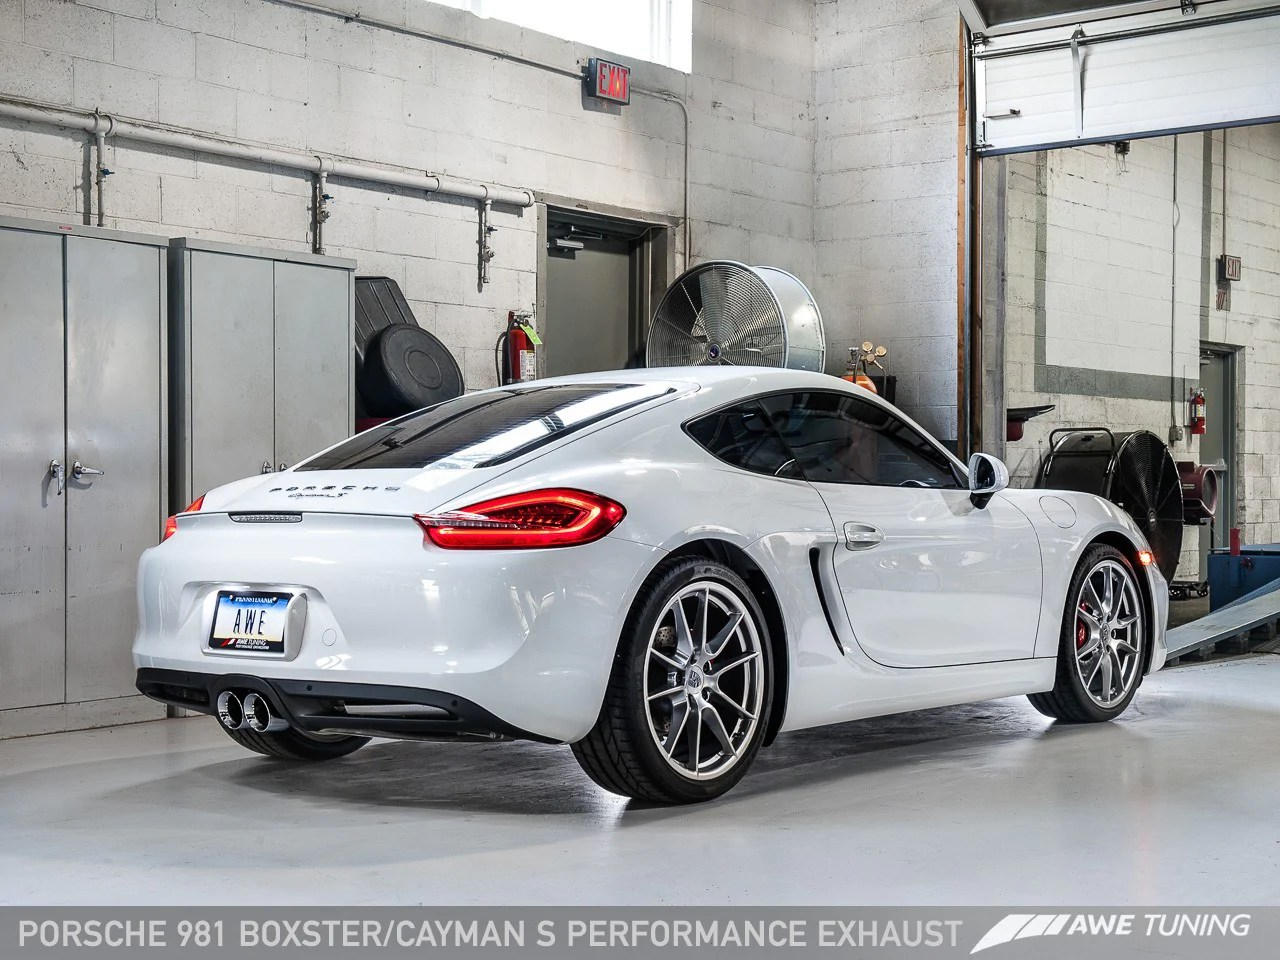 hight resolution of  awe tuning exhaust system cayman boxster 981 flat 6 motorsports porsche